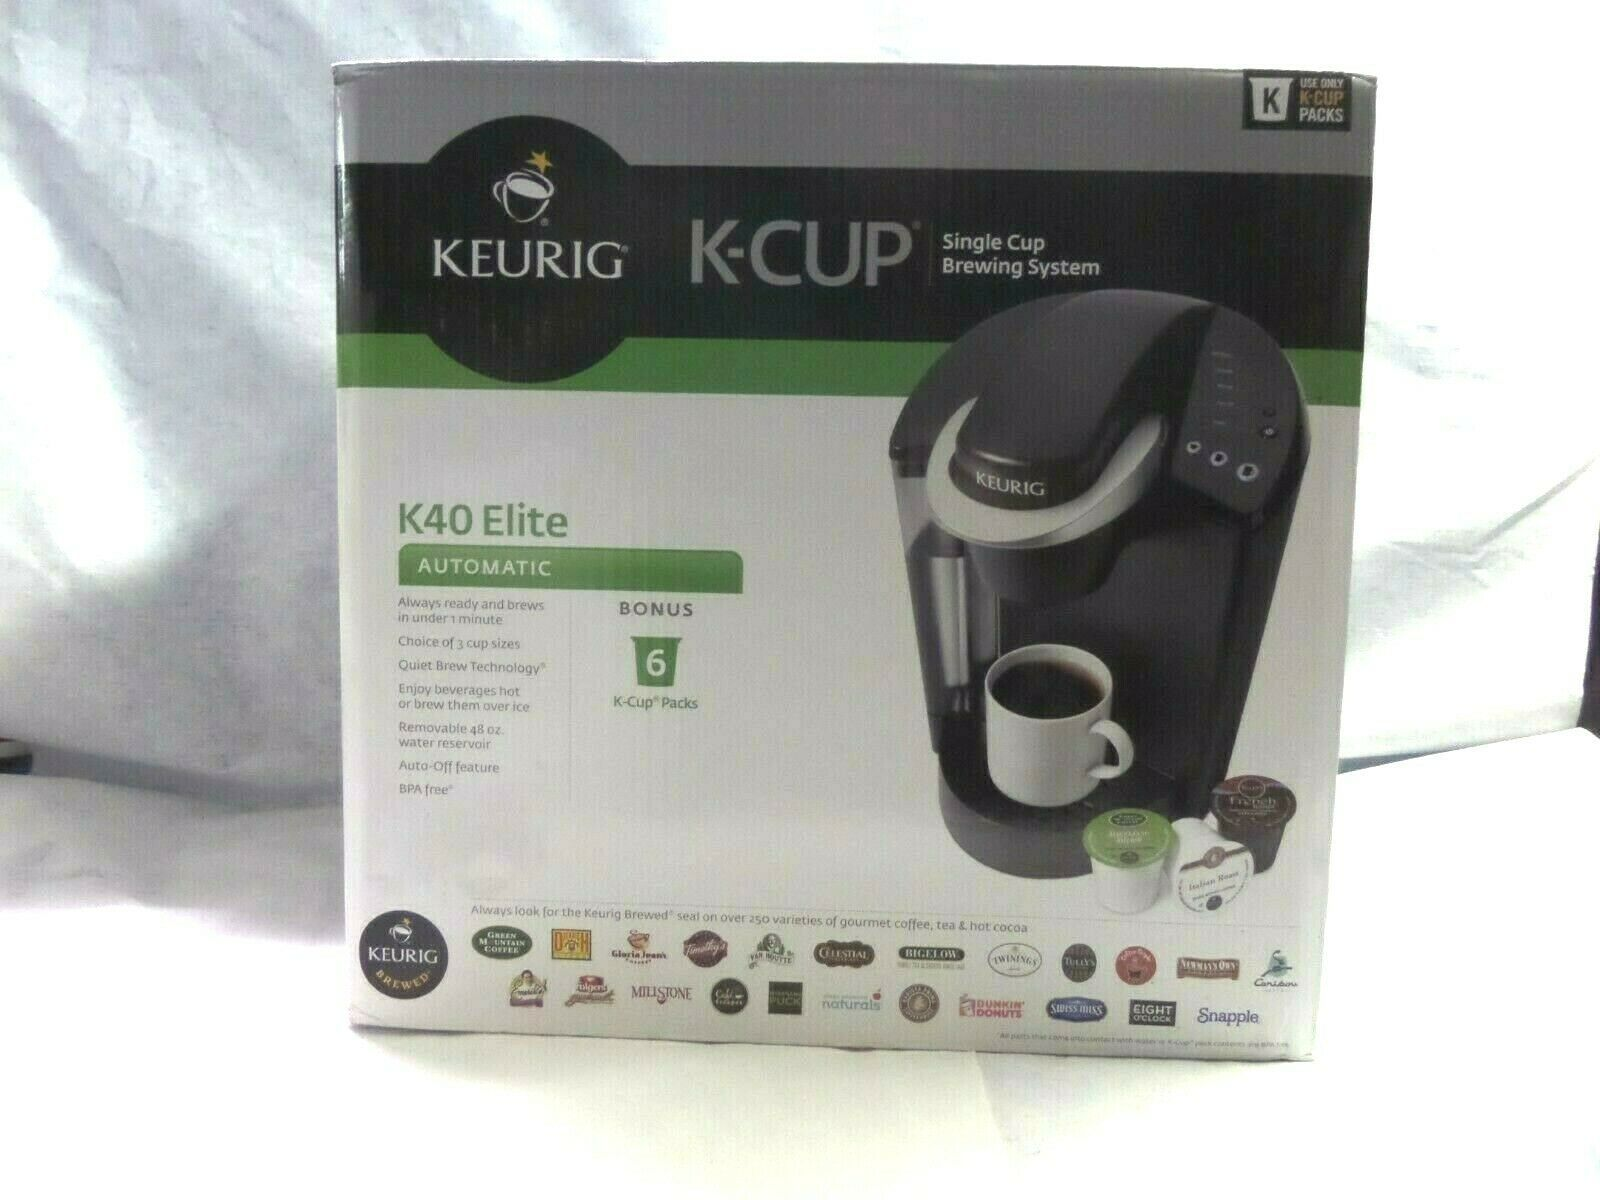 Details About Brand New Keurig K40 Elite K Cup Coffee Maker